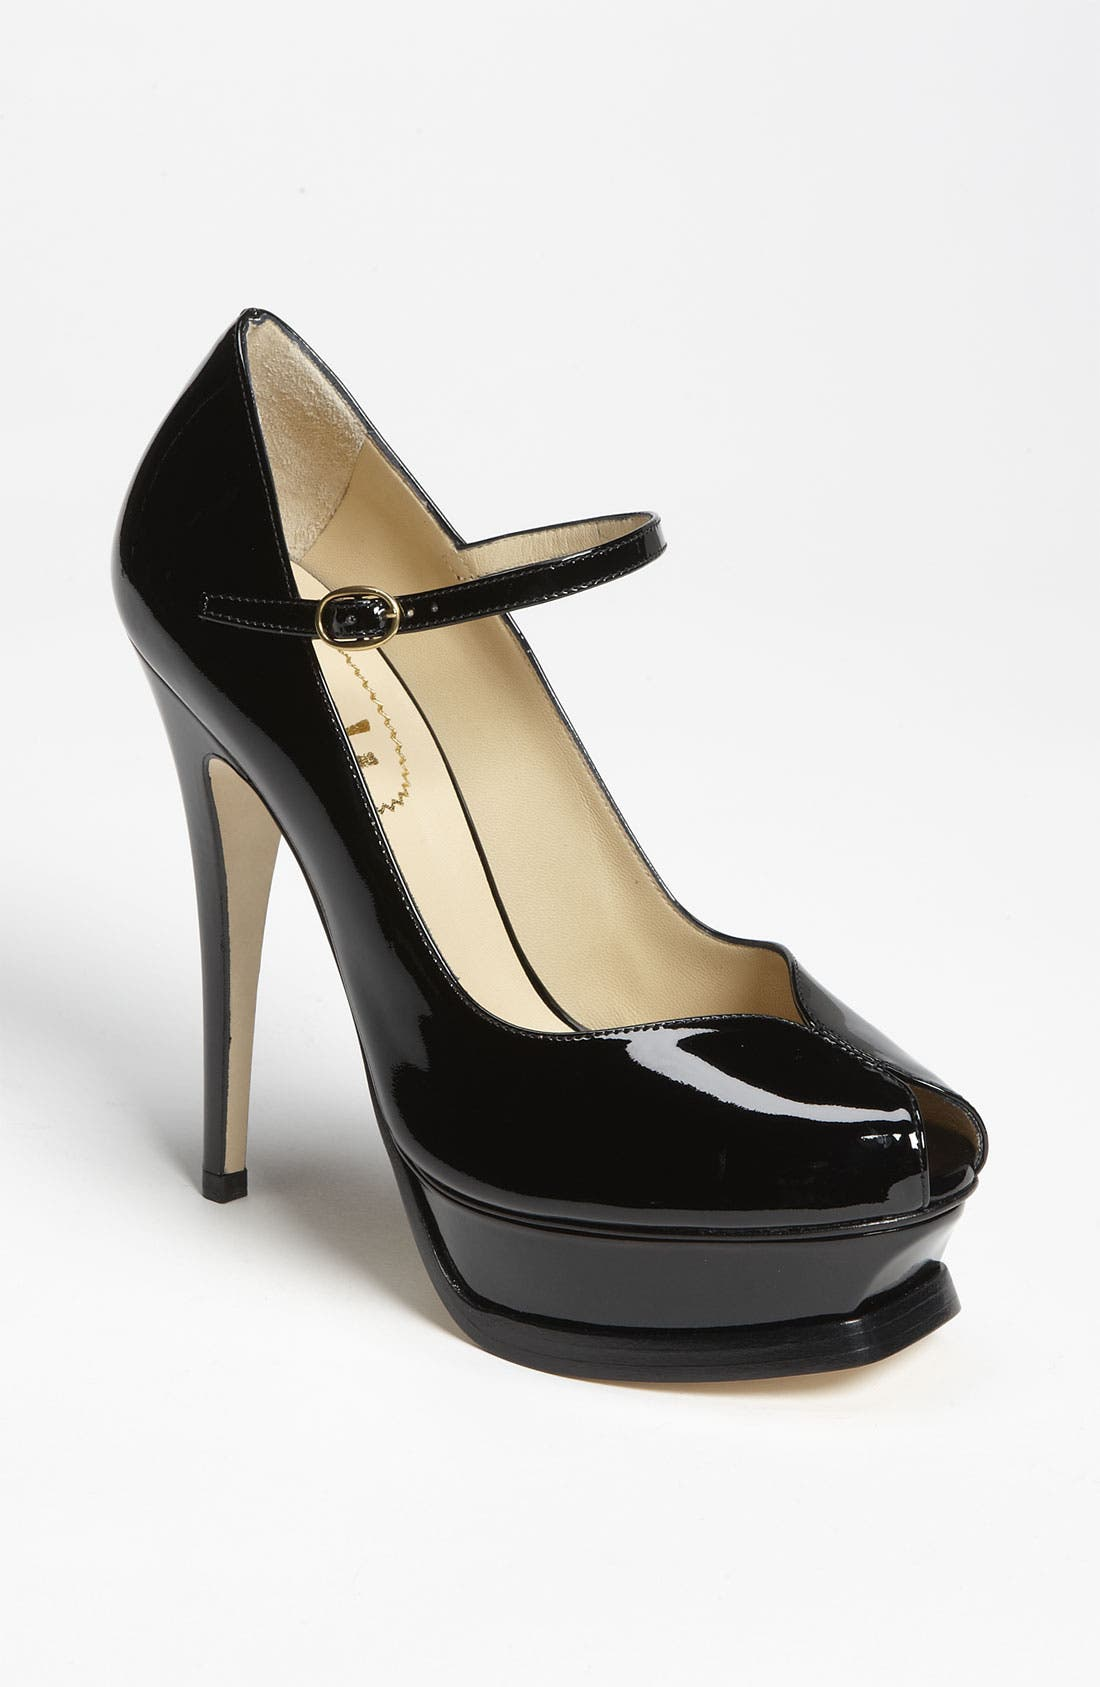 Alternate Image 1 Selected - Yves Saint Laurent 'Tribute' Mary Jane Pump